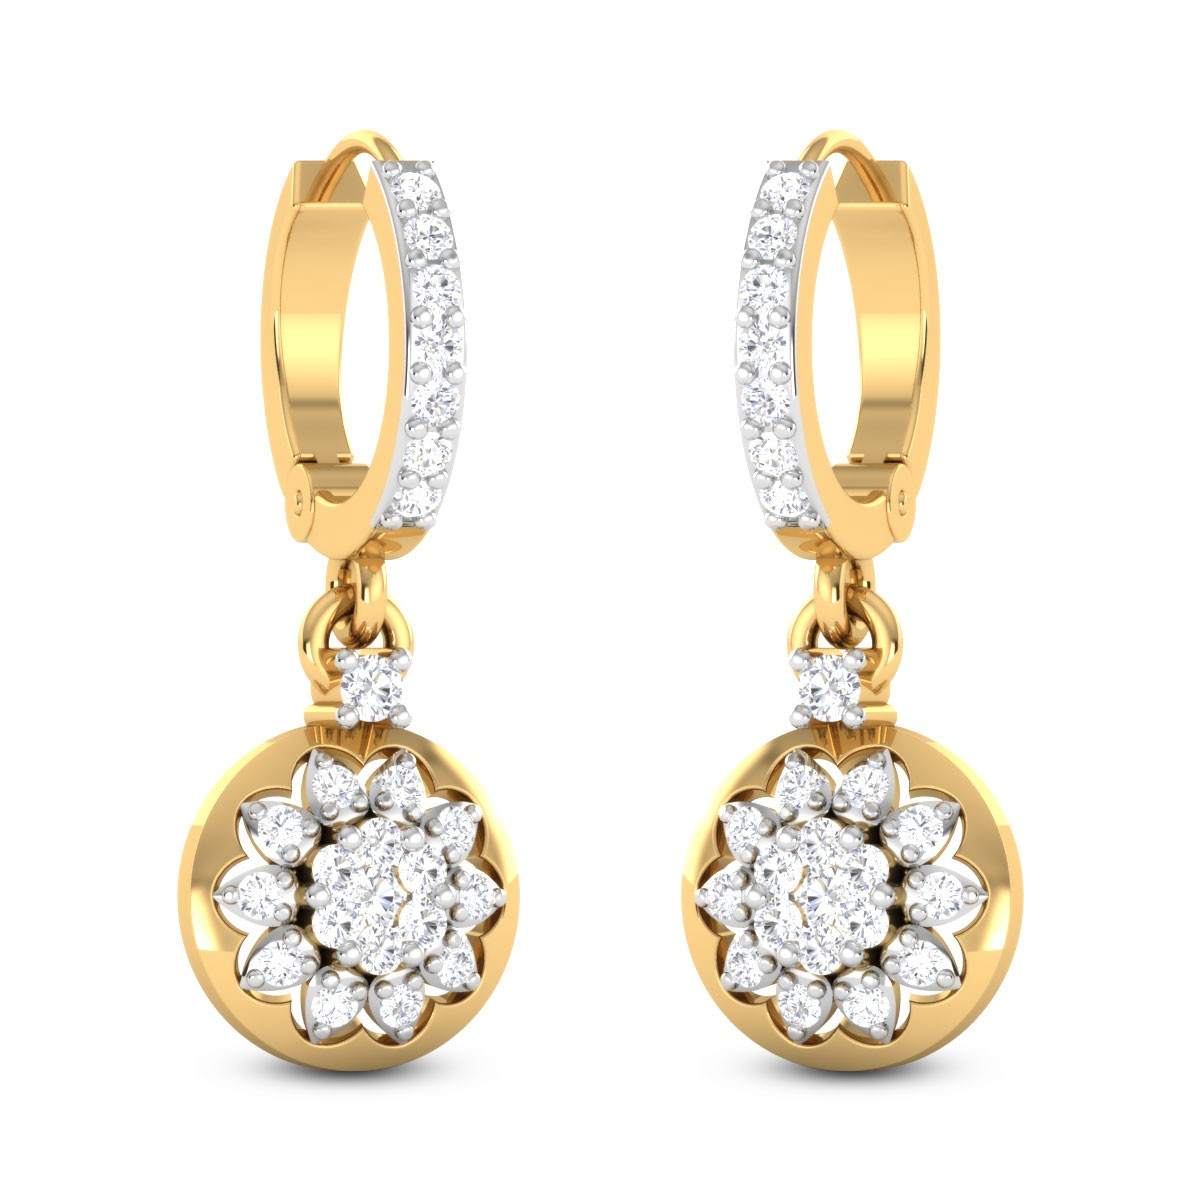 Cantata Diamond Earrings